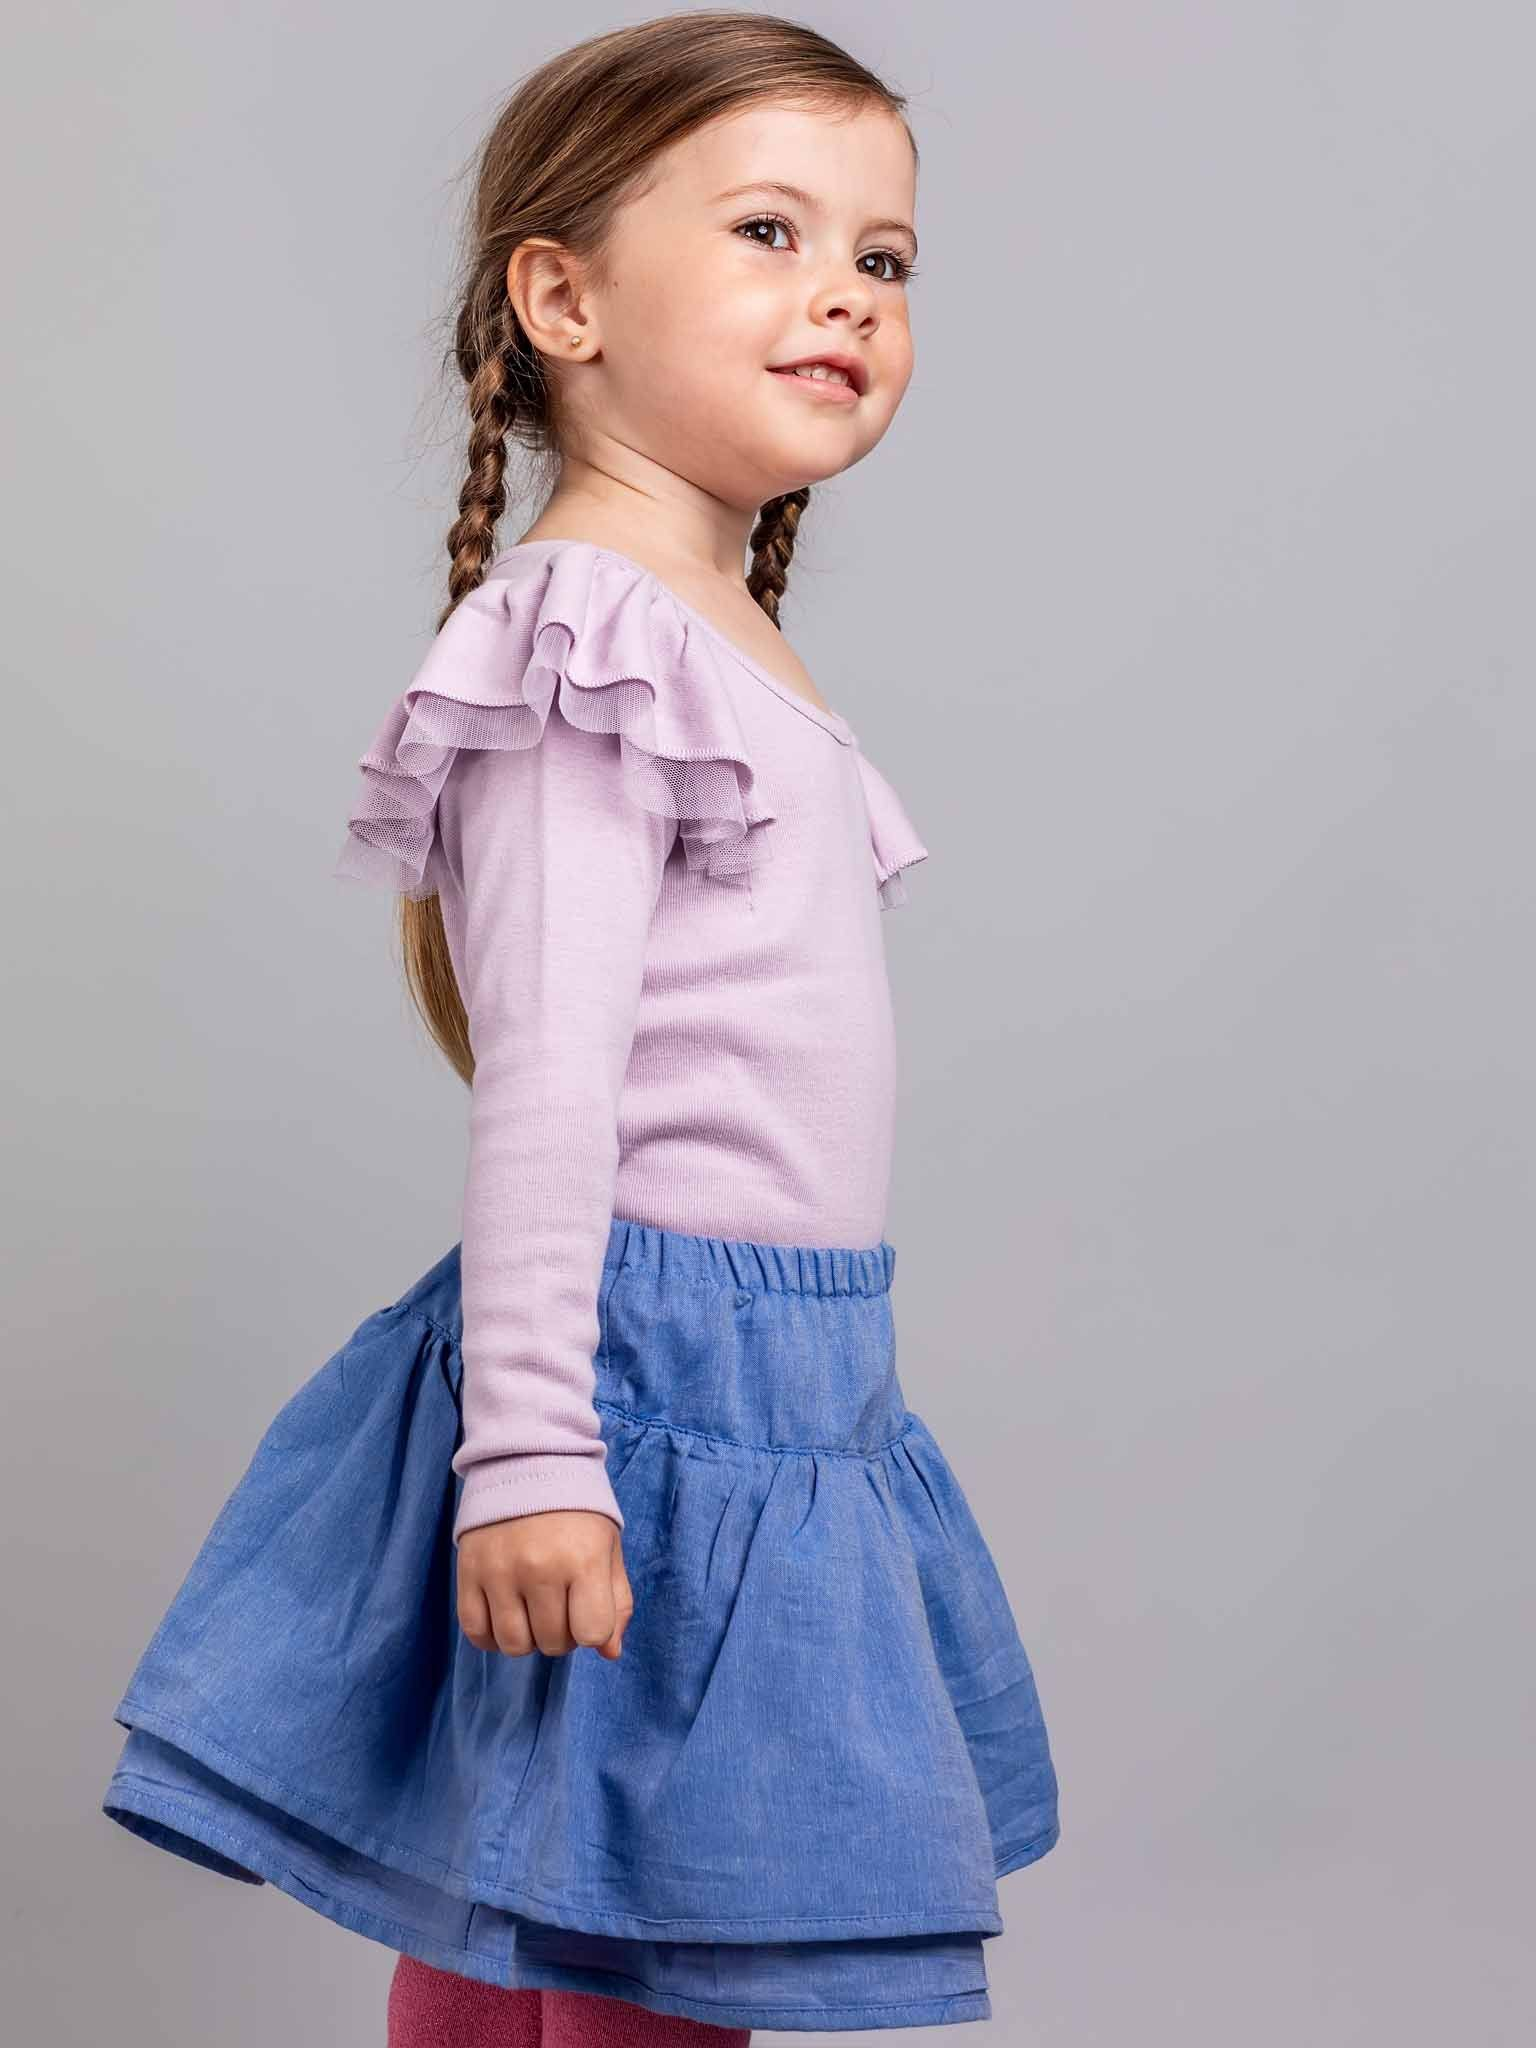 Sweetheart Long Sleeved Tee Lilac, Tops - Oobi Girls Kid Fashion